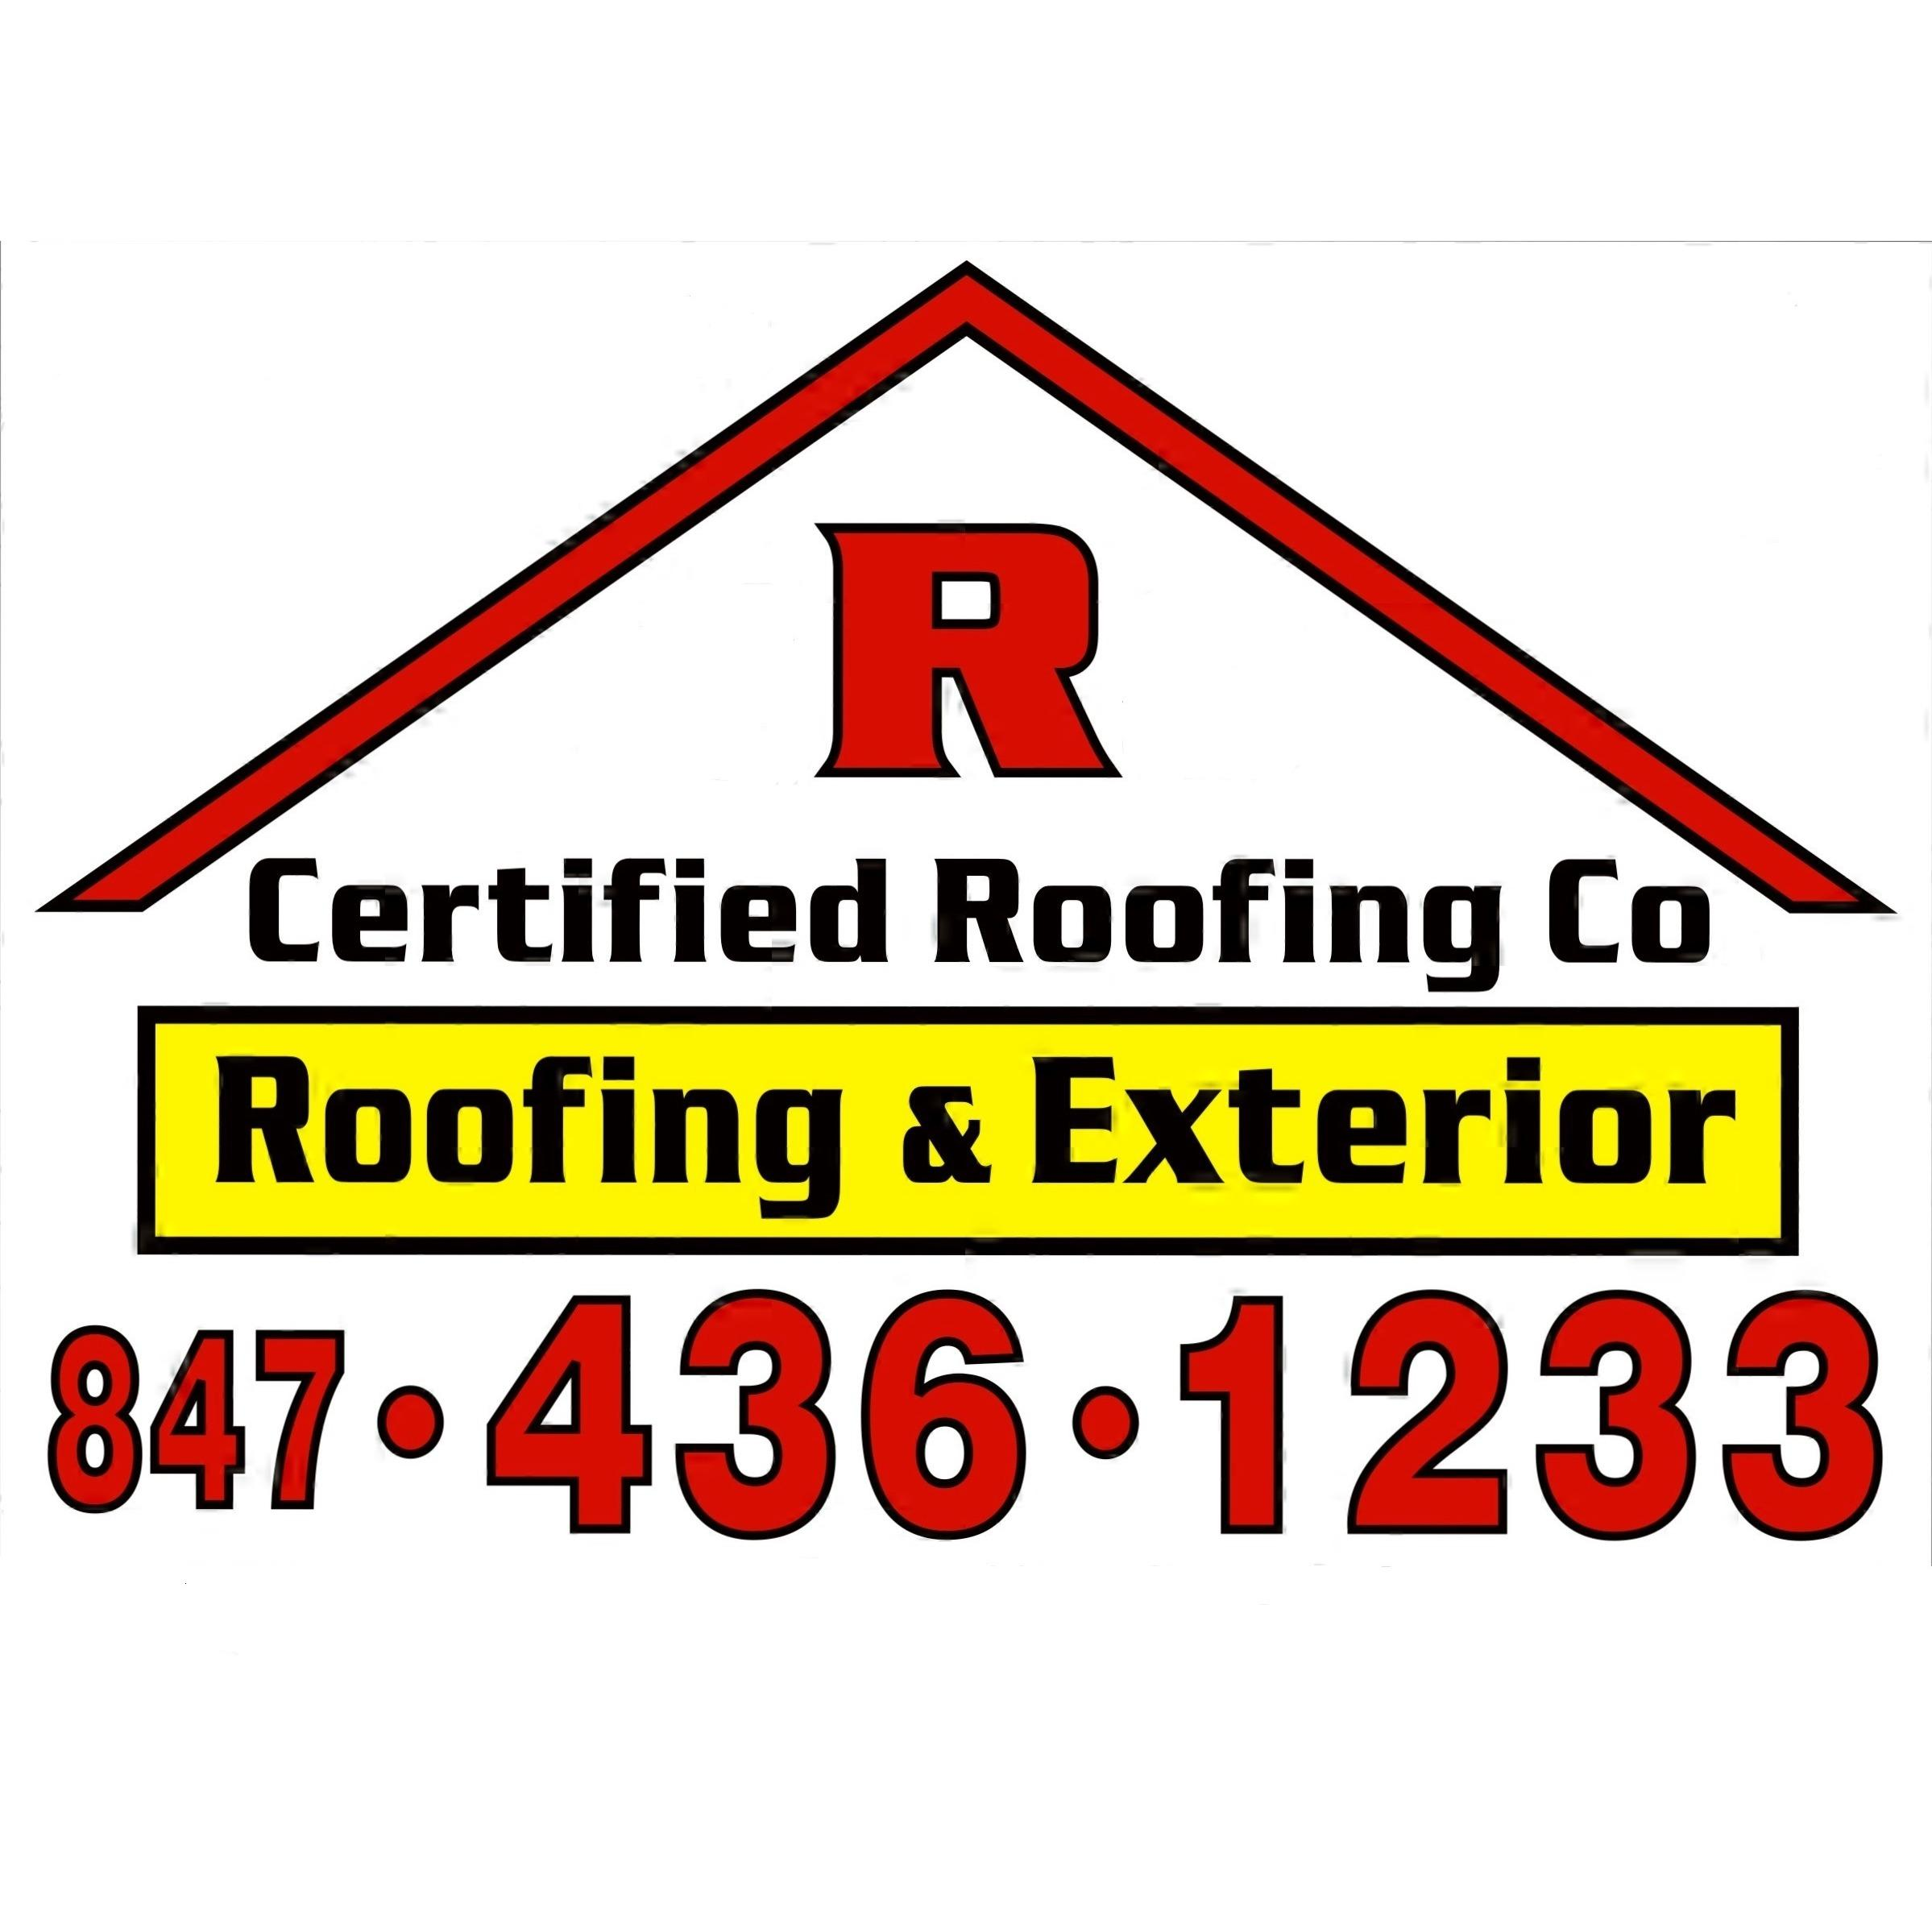 Certified Roofing Company LLC image 1